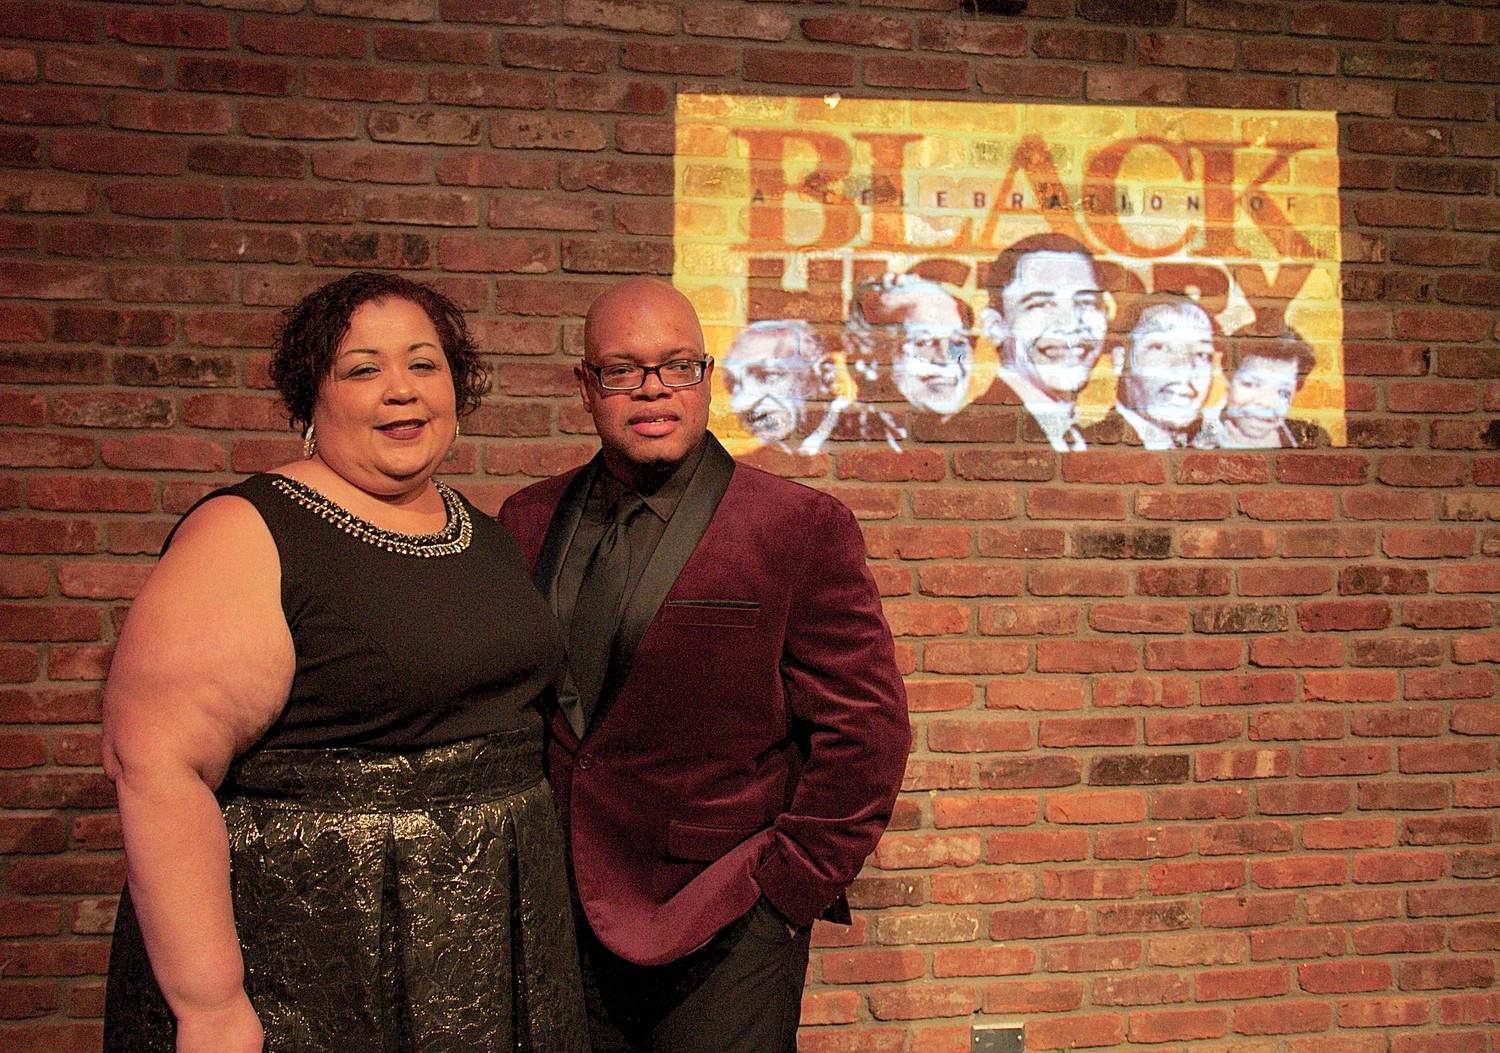 Co-hosts for a celebration of black history were Damary Mercado and Roderick Watson.